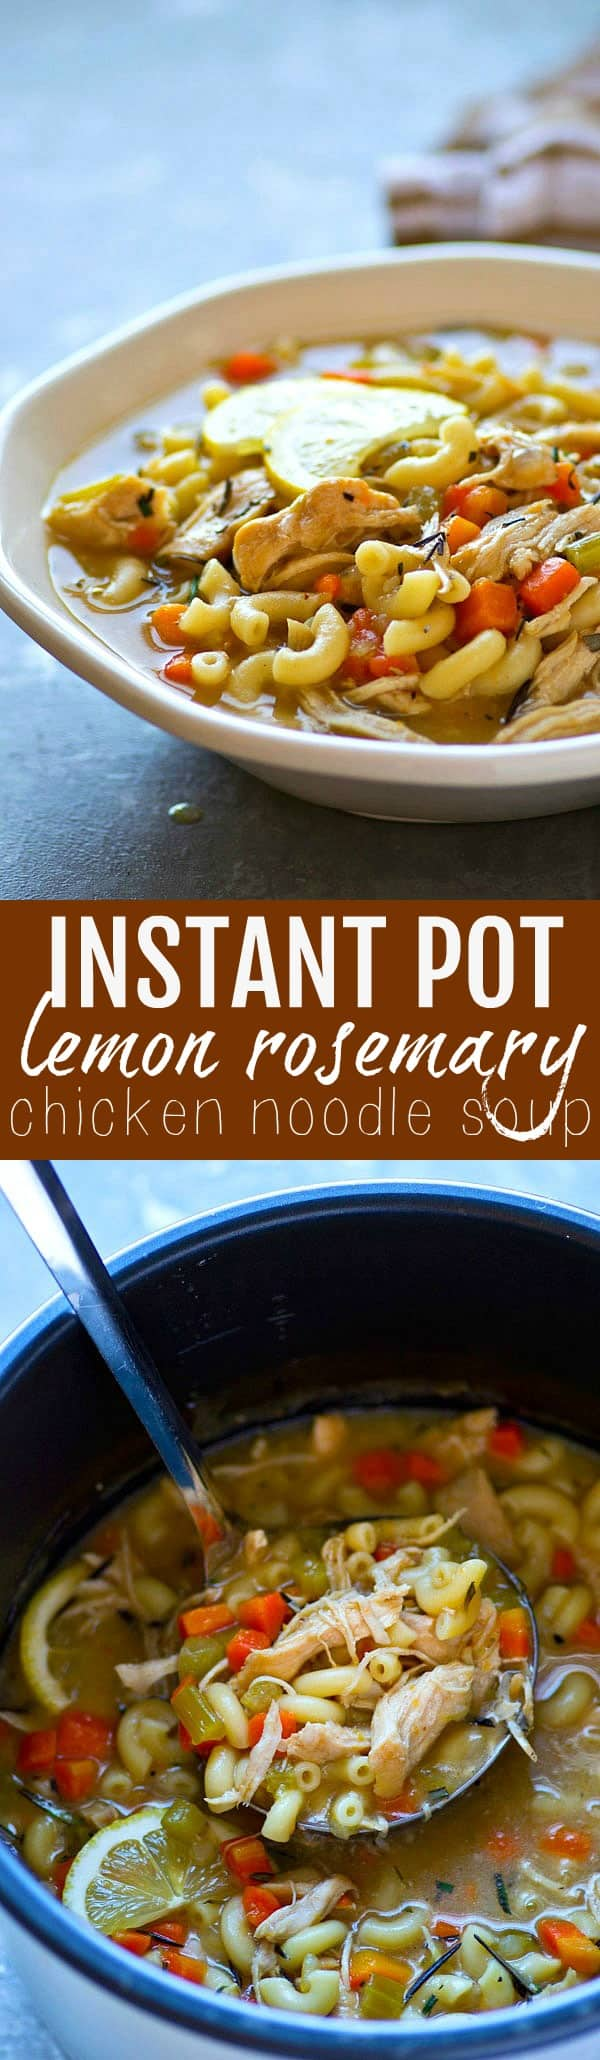 Classic comfort food chicken noodle soup is jazzed up with the flavorful combo of lemon and rosemary and the whole thing is made entirely in your instant pot in only 20 minutes!